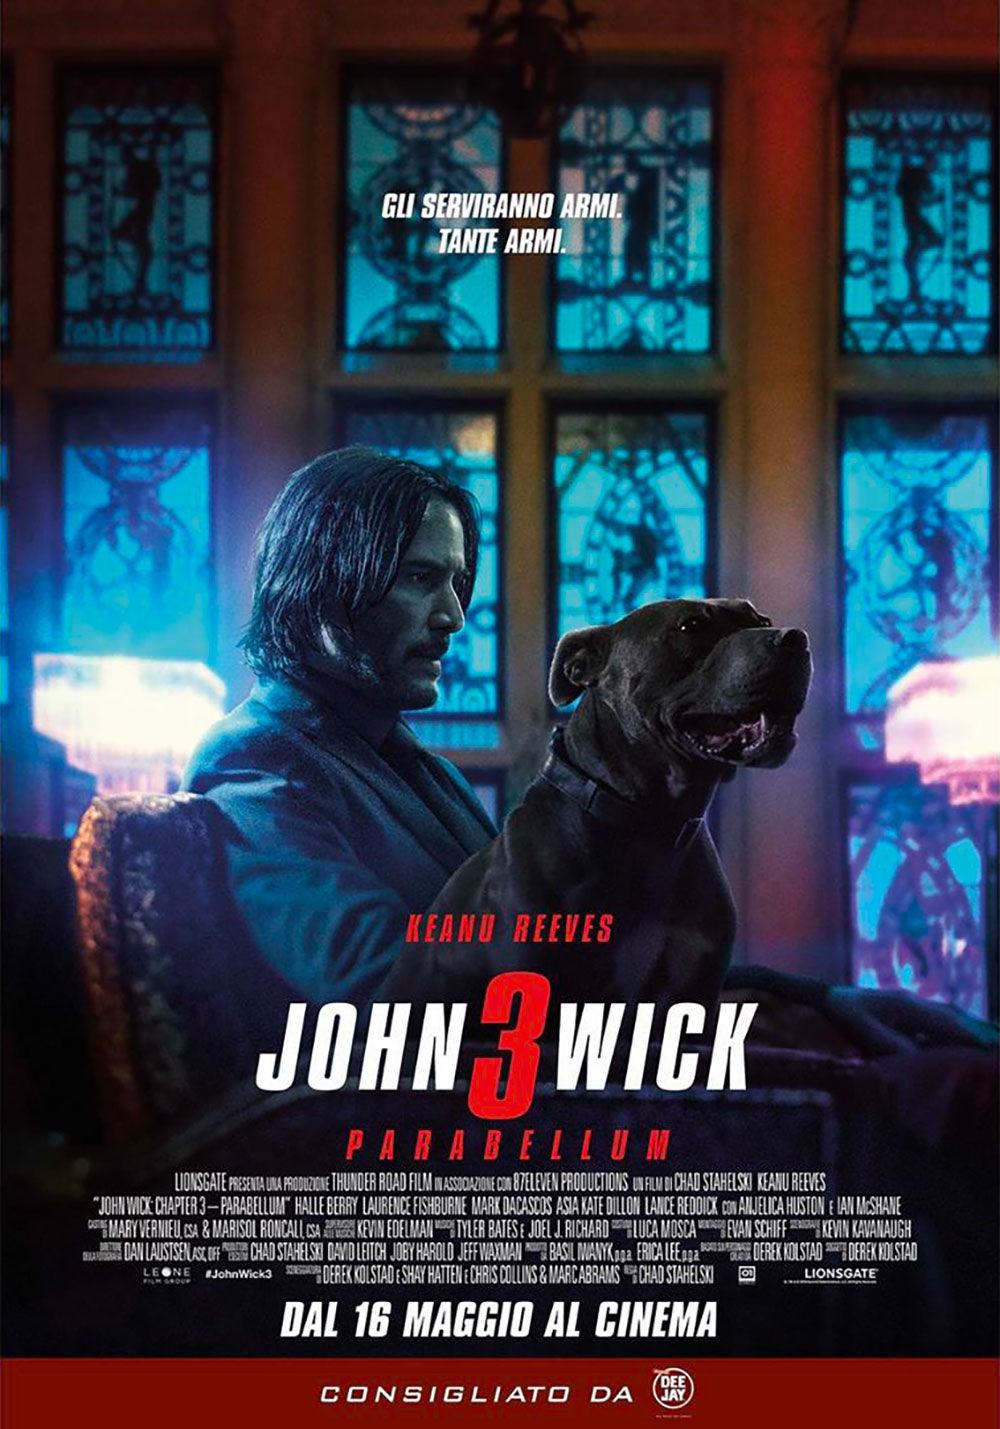 John Wick: Chapter 3 - Parabellum (2019) - Photo Gallery - IMDb